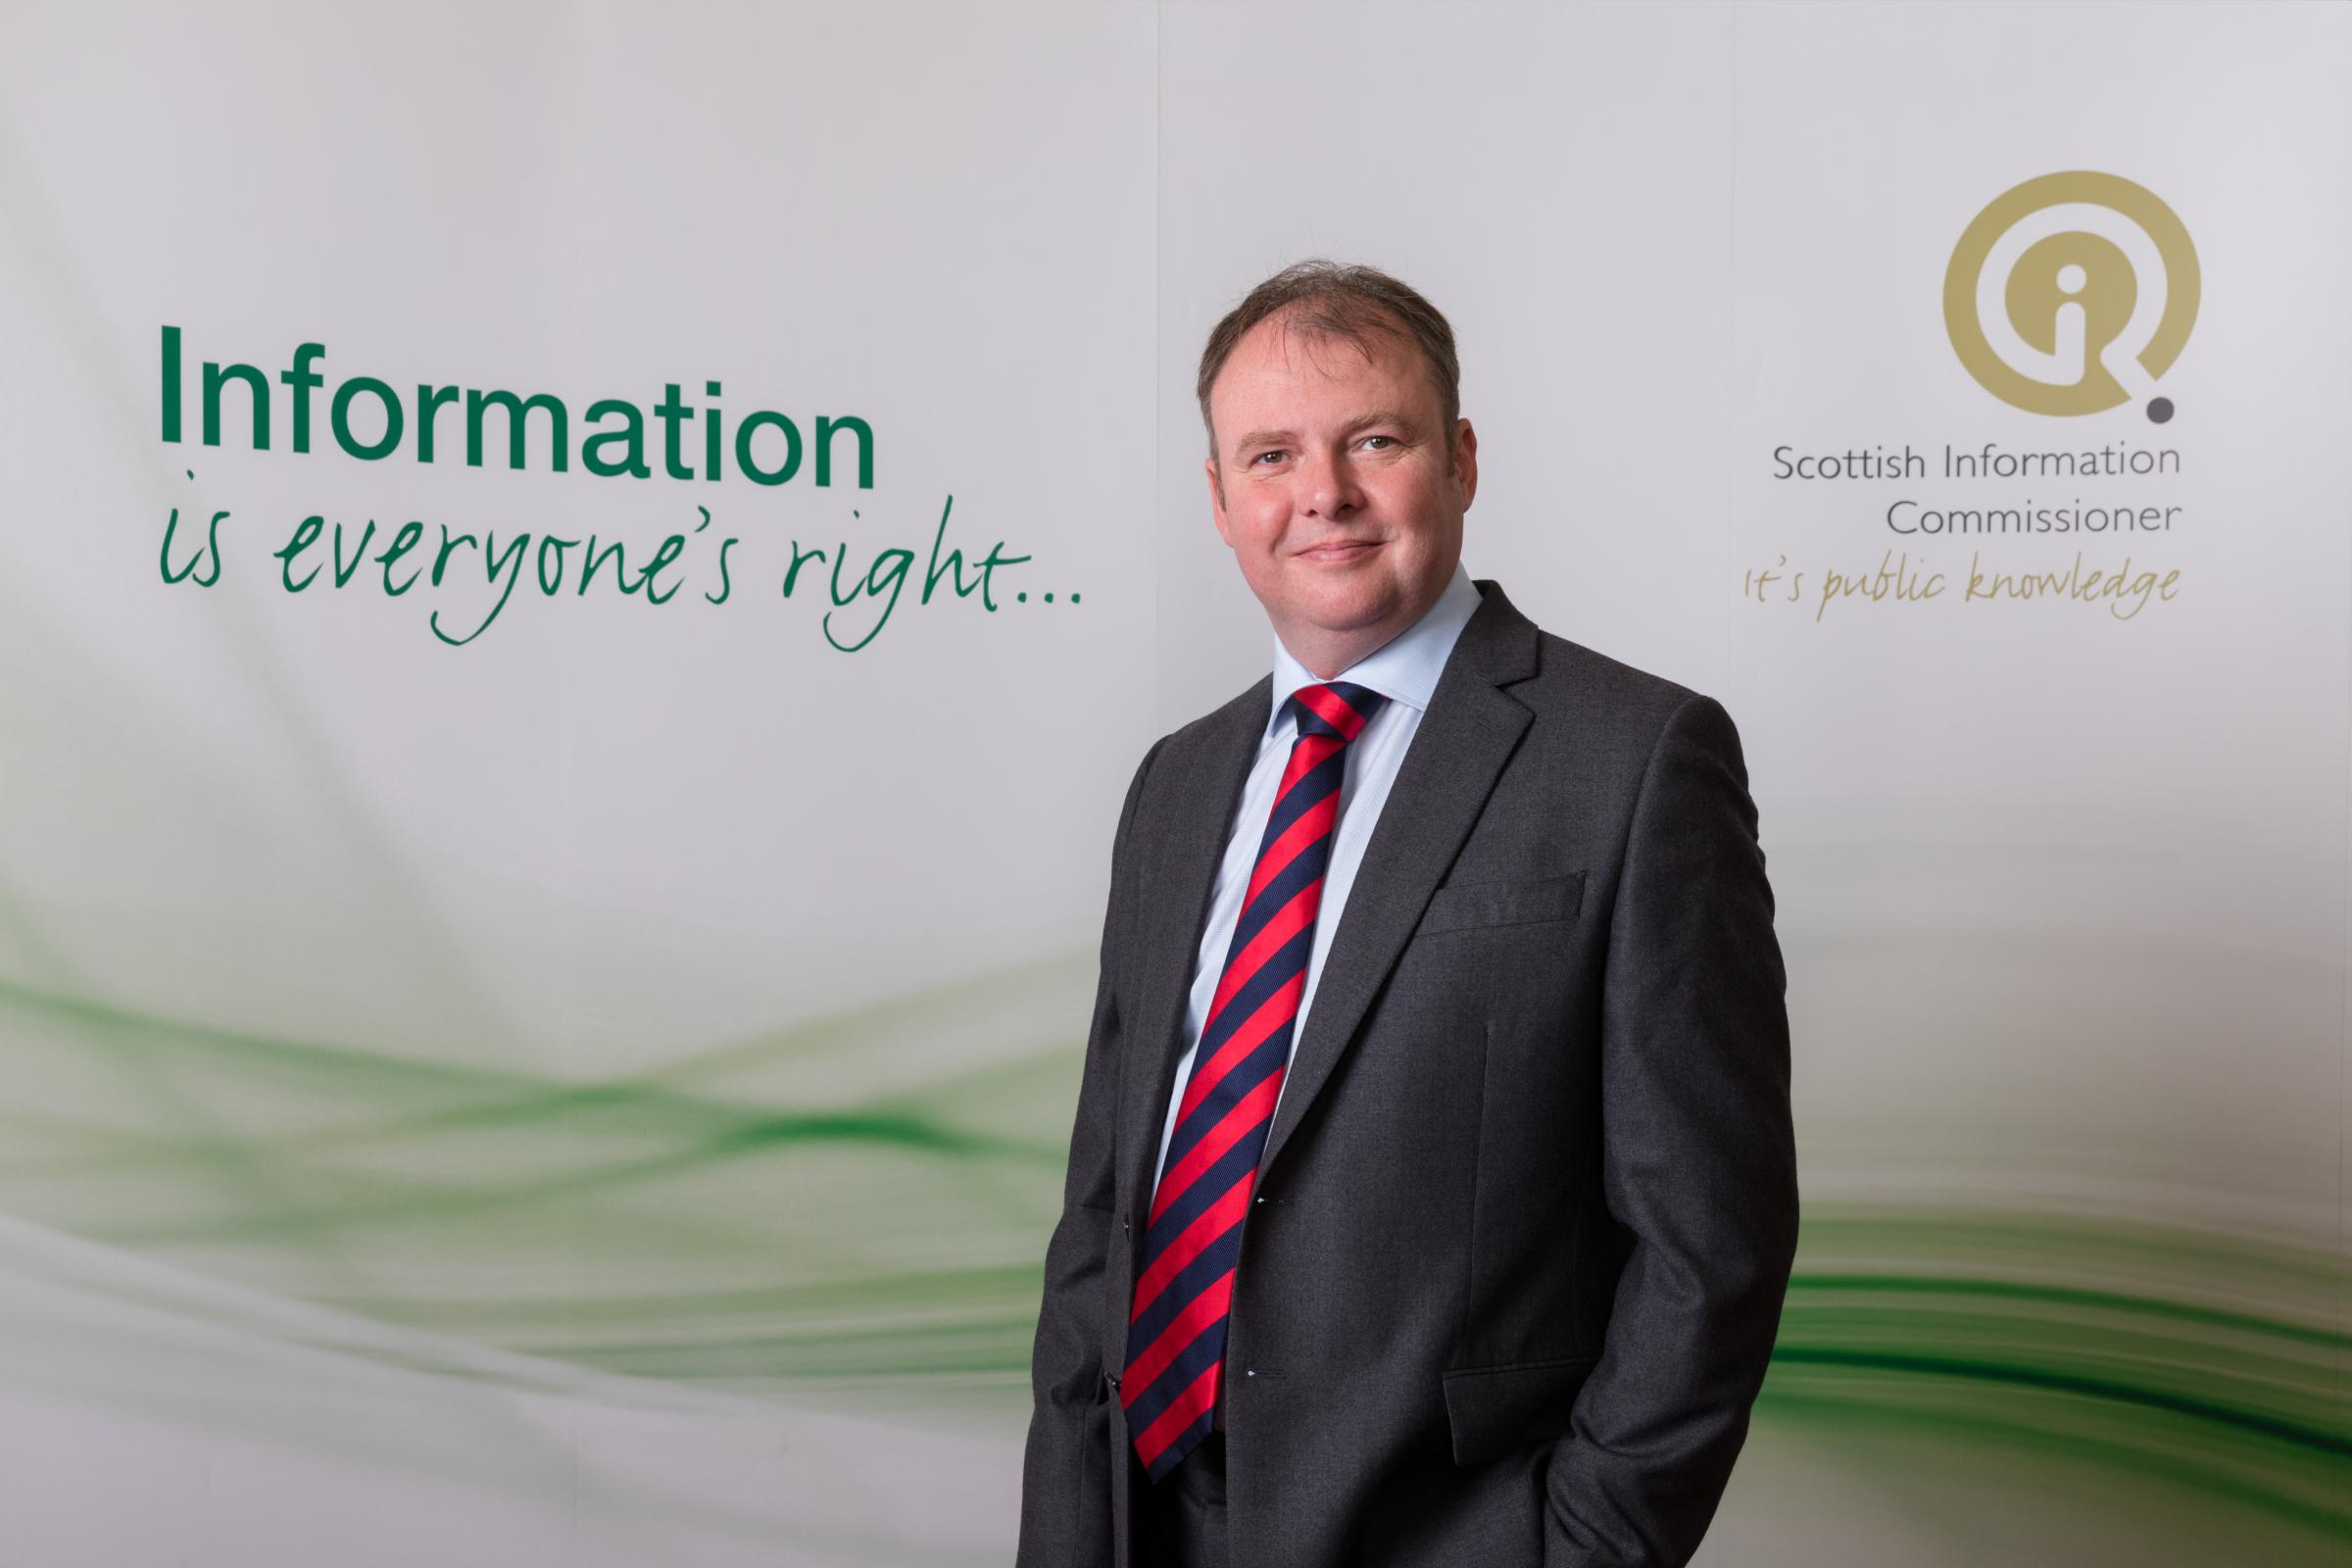 Daren Fitzhenry, Scottish Information Commissioner